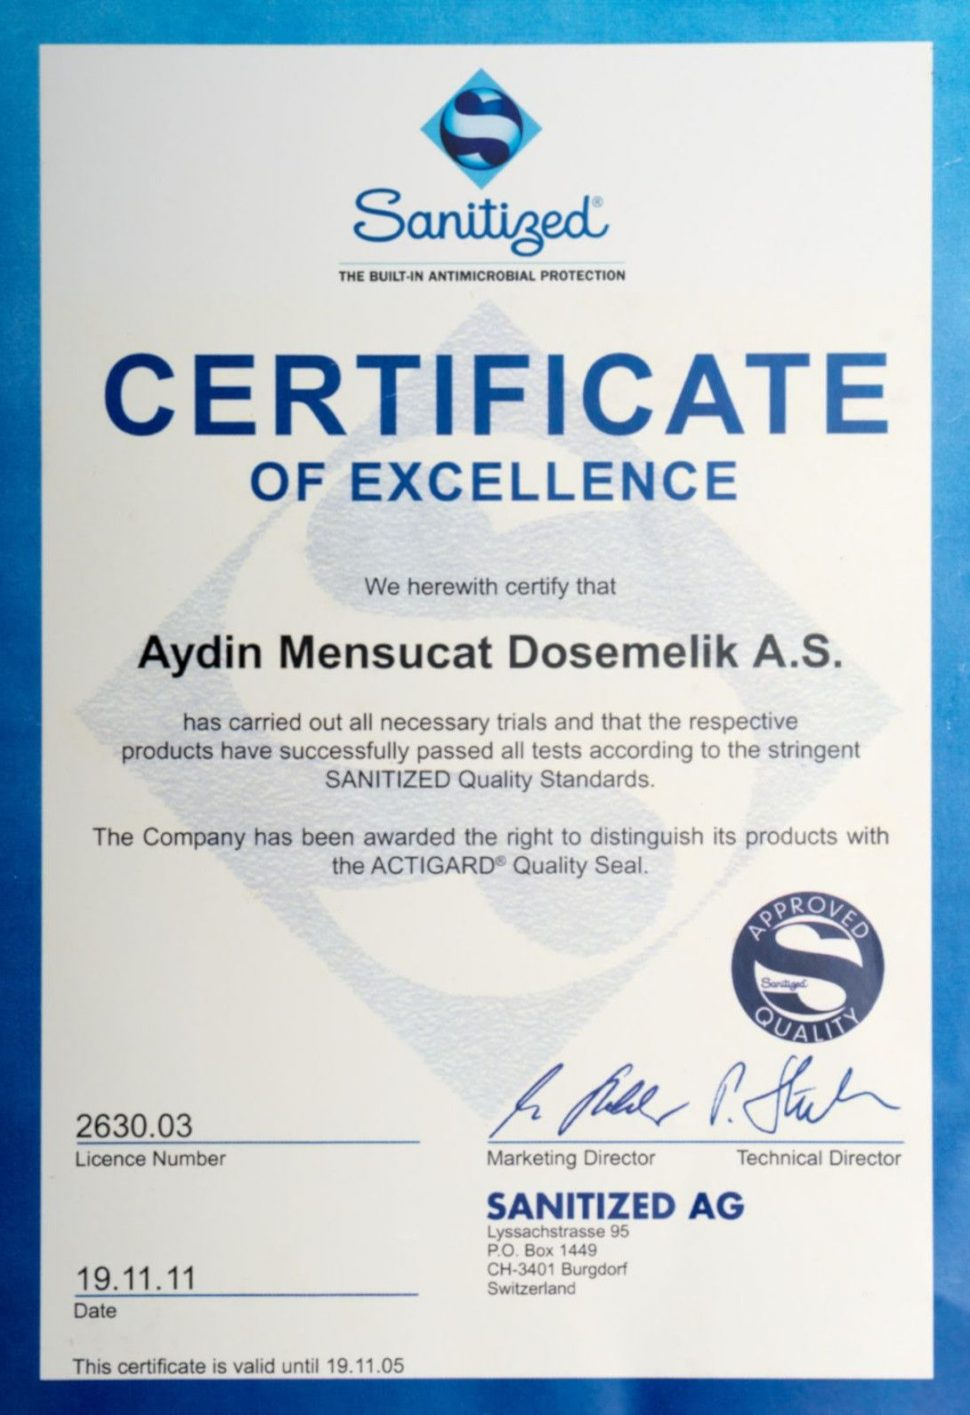 Mattress for health certificate of excellence sanitized